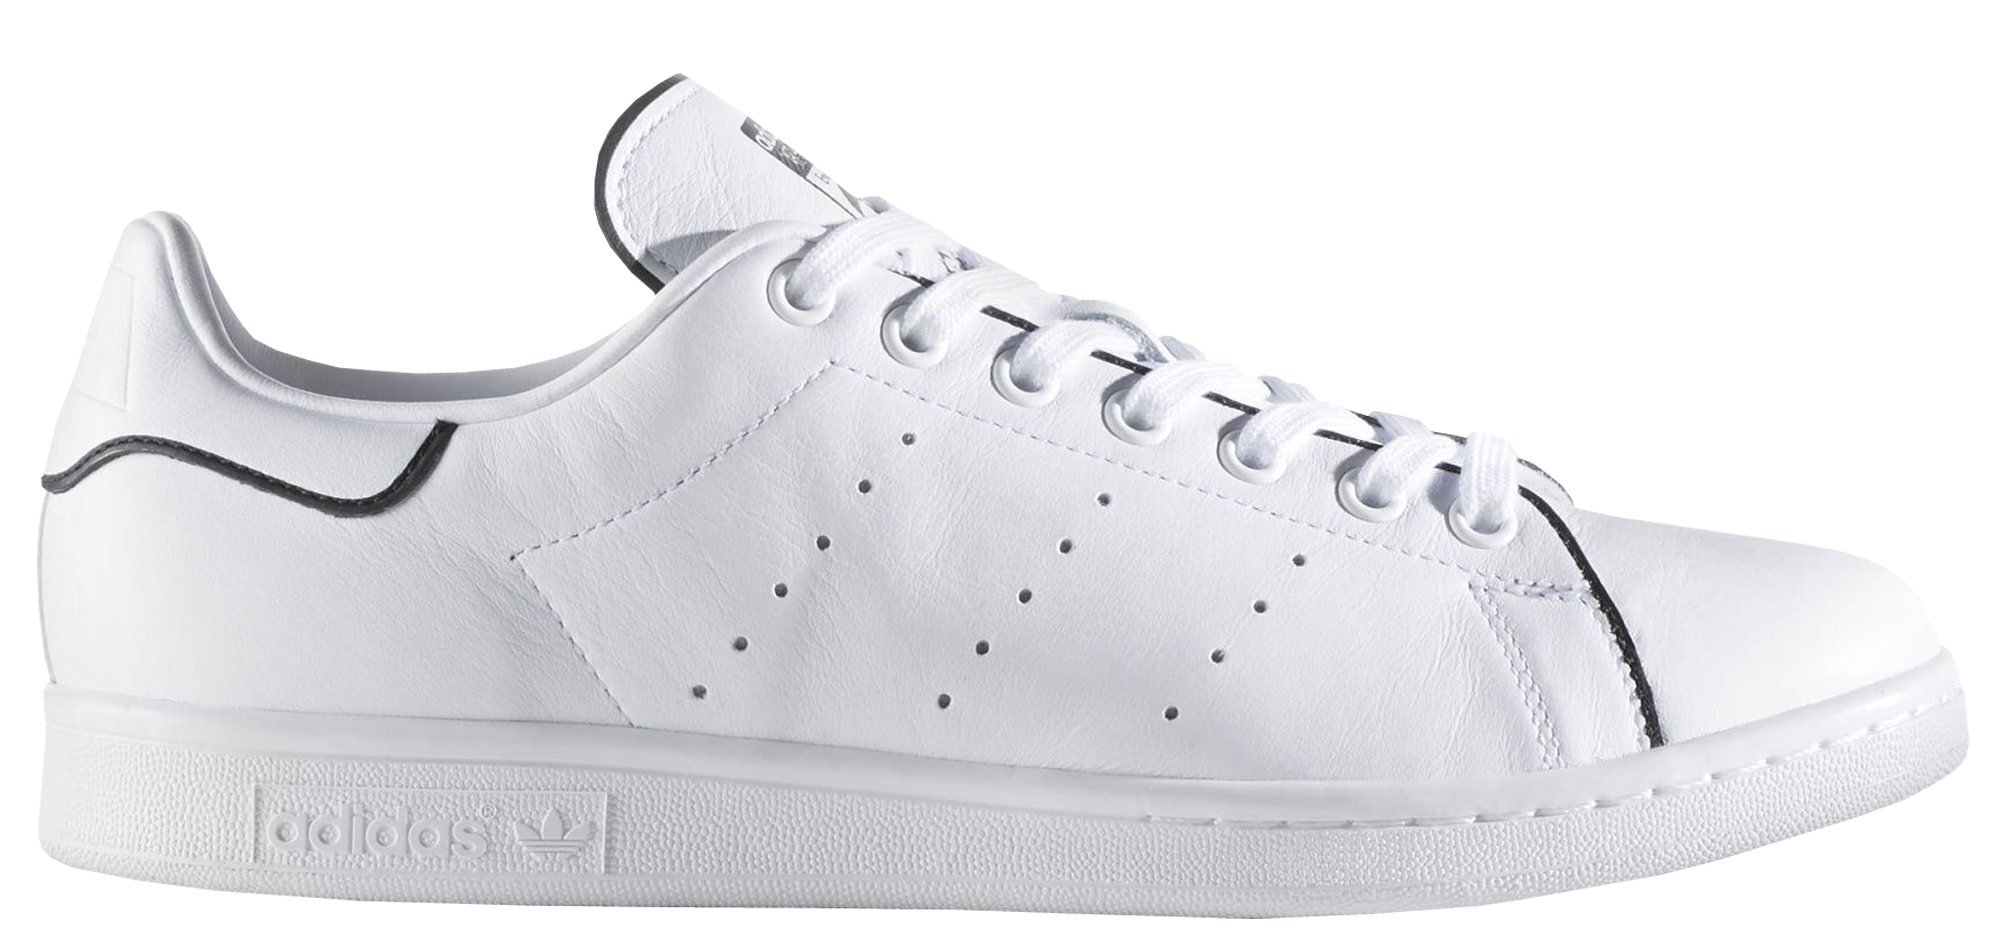 Adidas Stan Smith Arthur Ashe Tribute Black History Month 2017